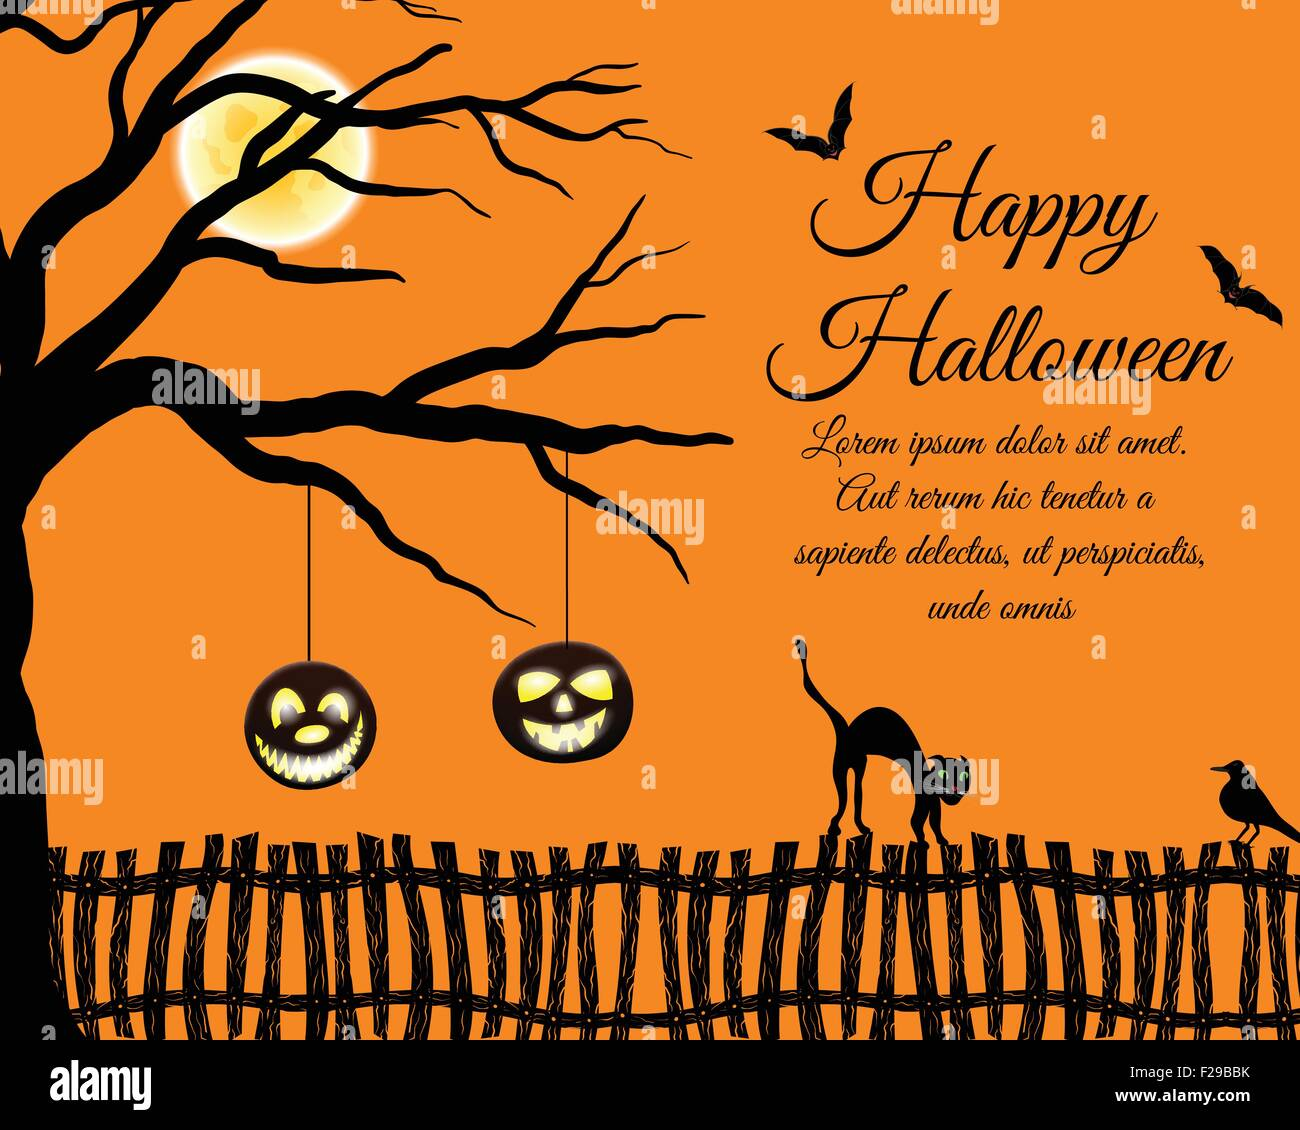 Halloween Business Greeting Cards Image Collections Greetings Card